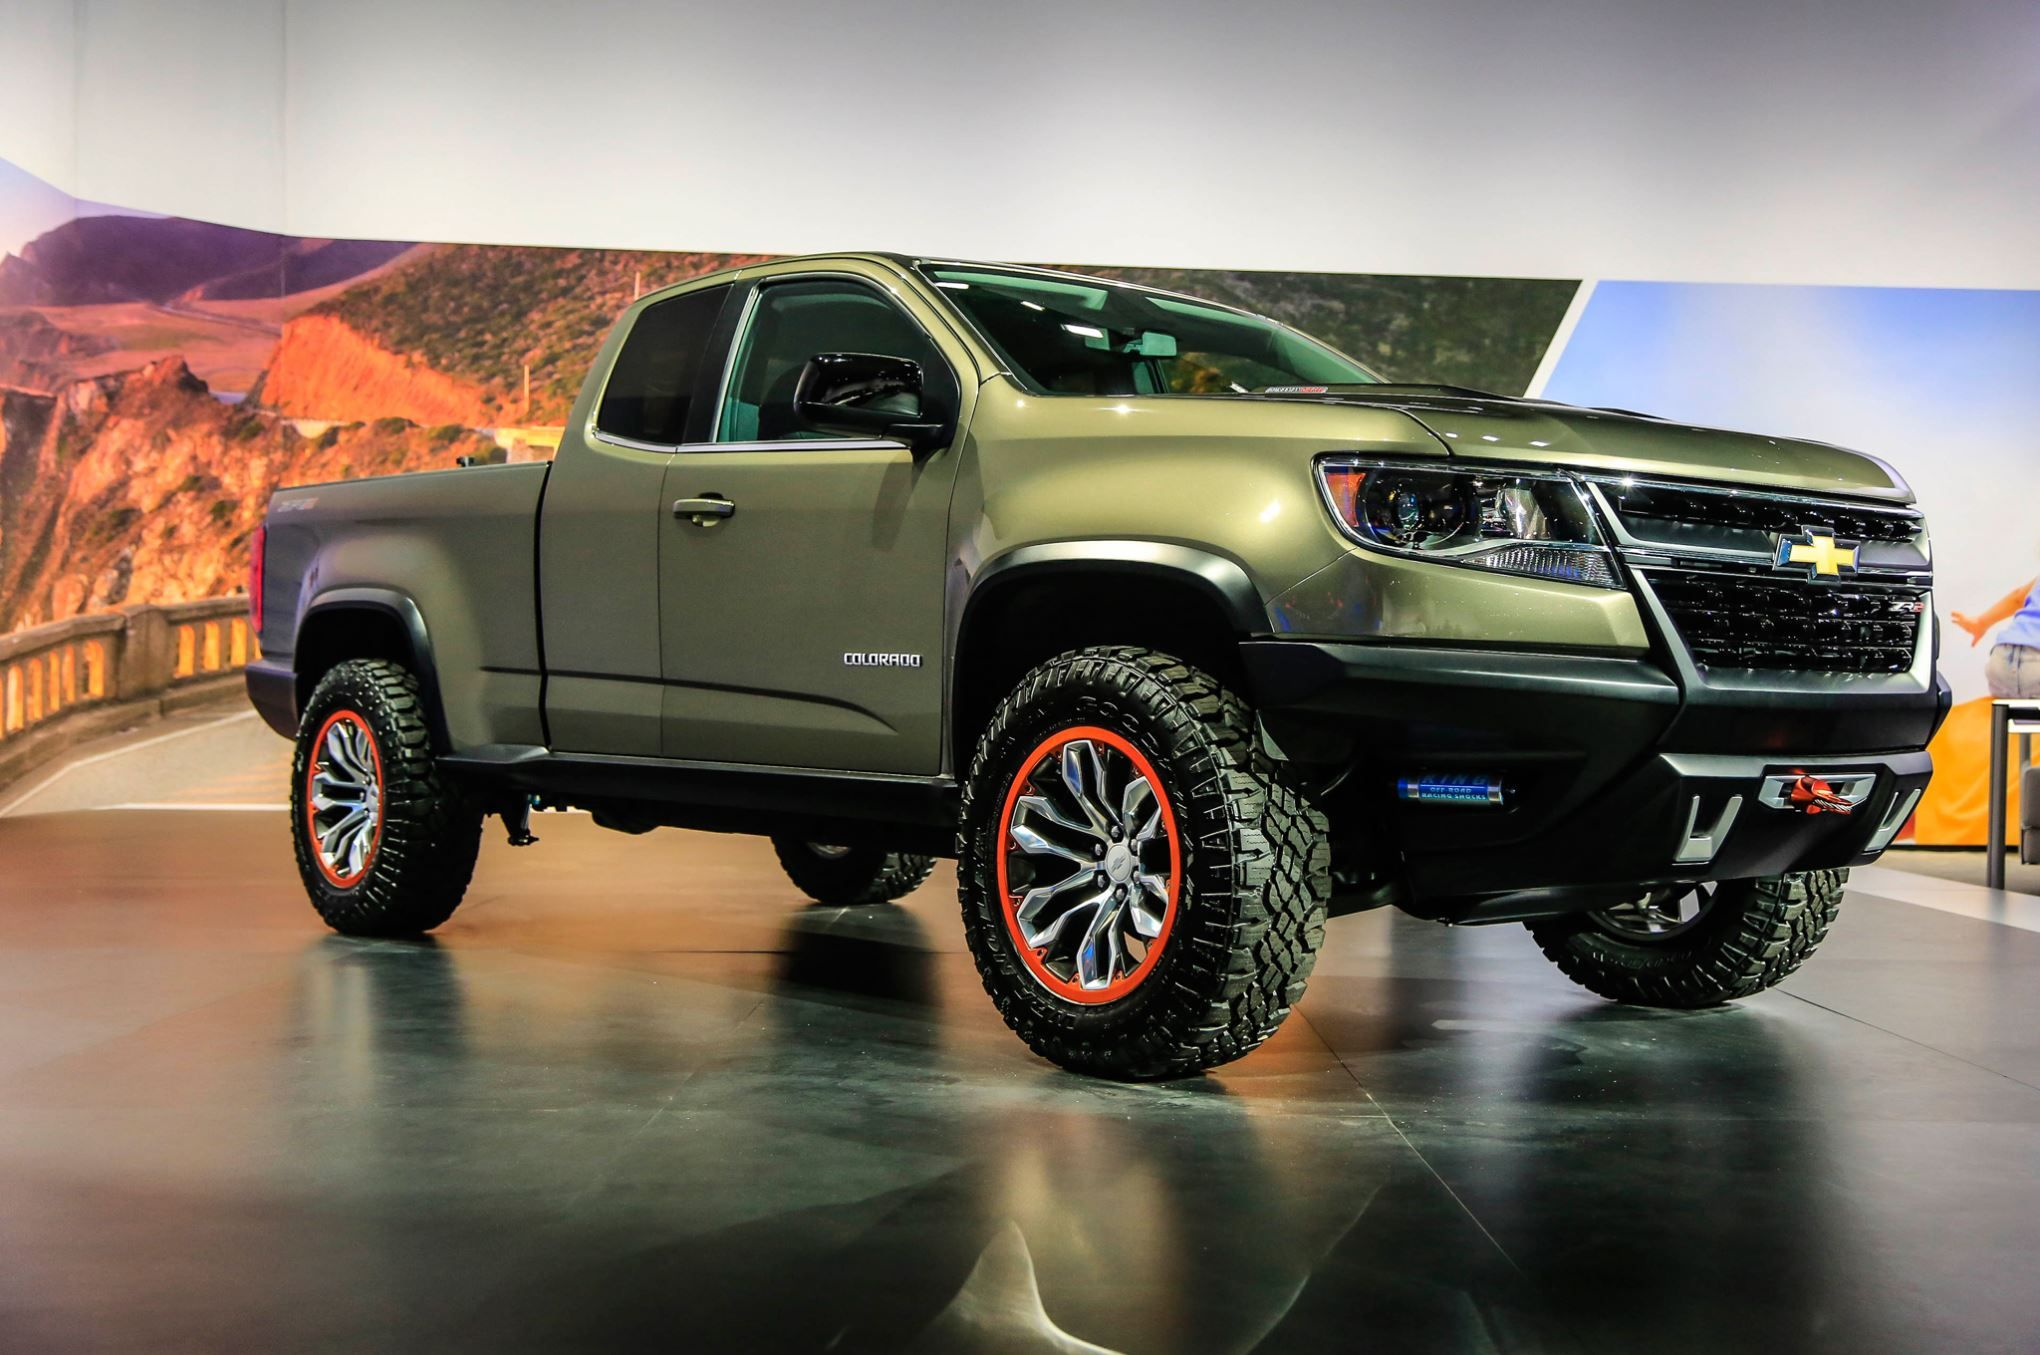 2015 chevrolet colorado zr2 concept provided by motortrend